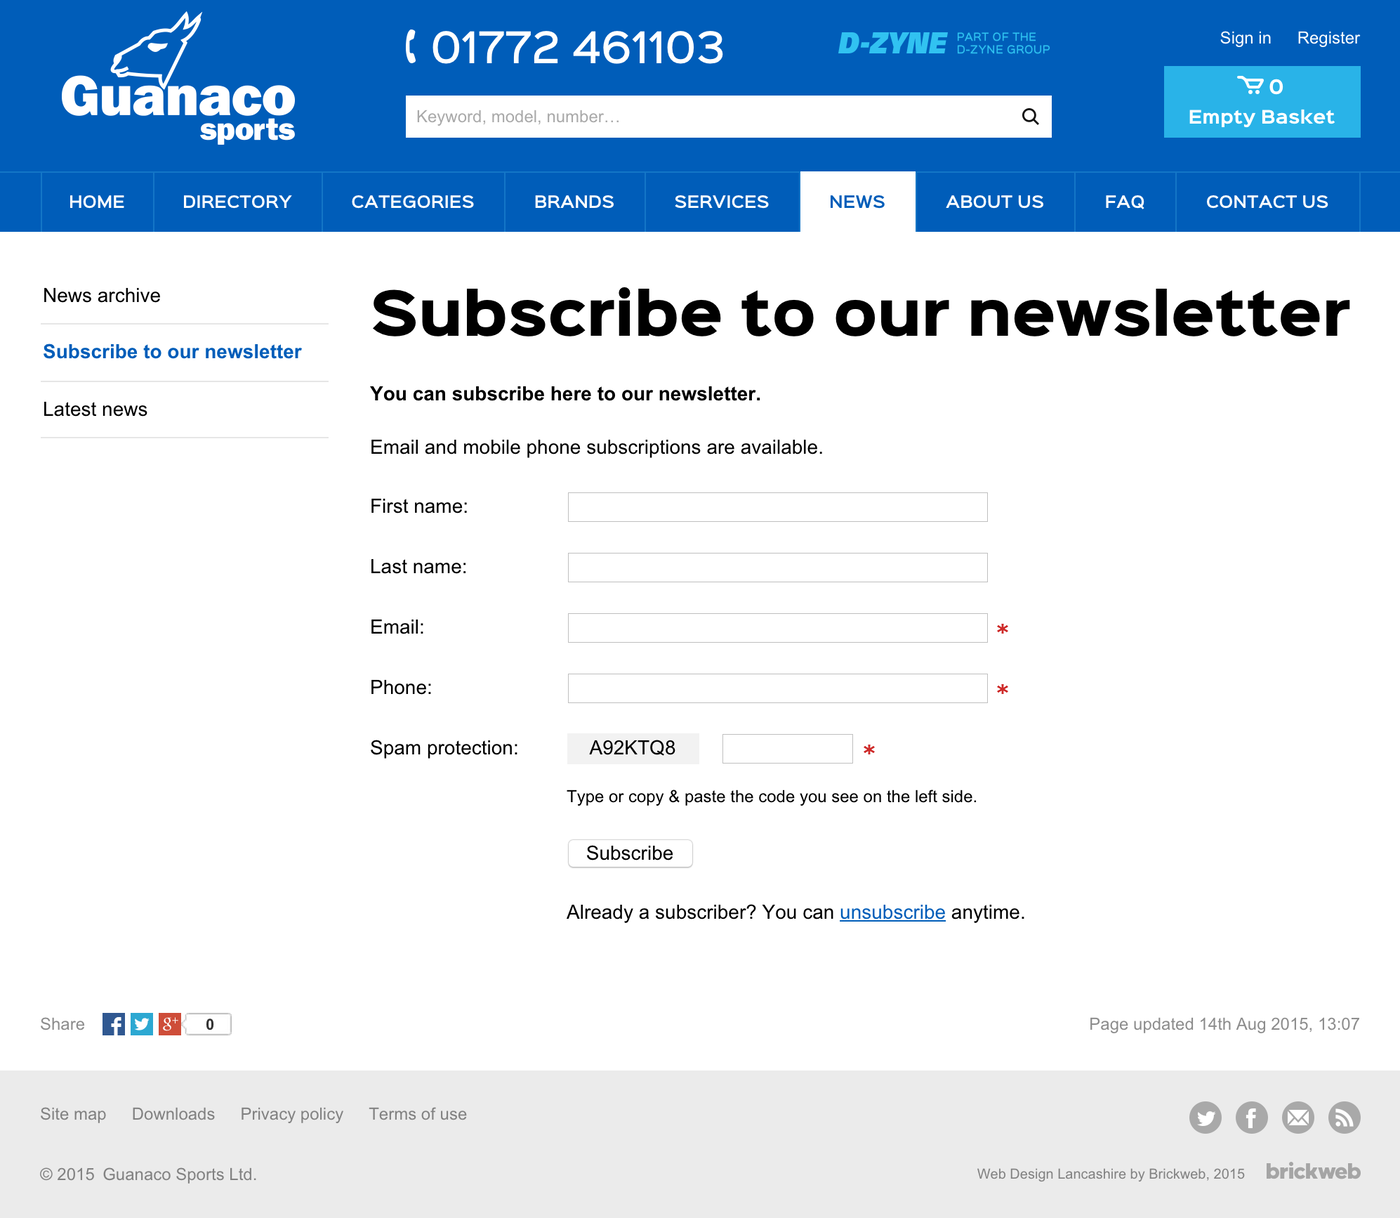 Guanaco Sports Ltd. Subscribe to our newsletter